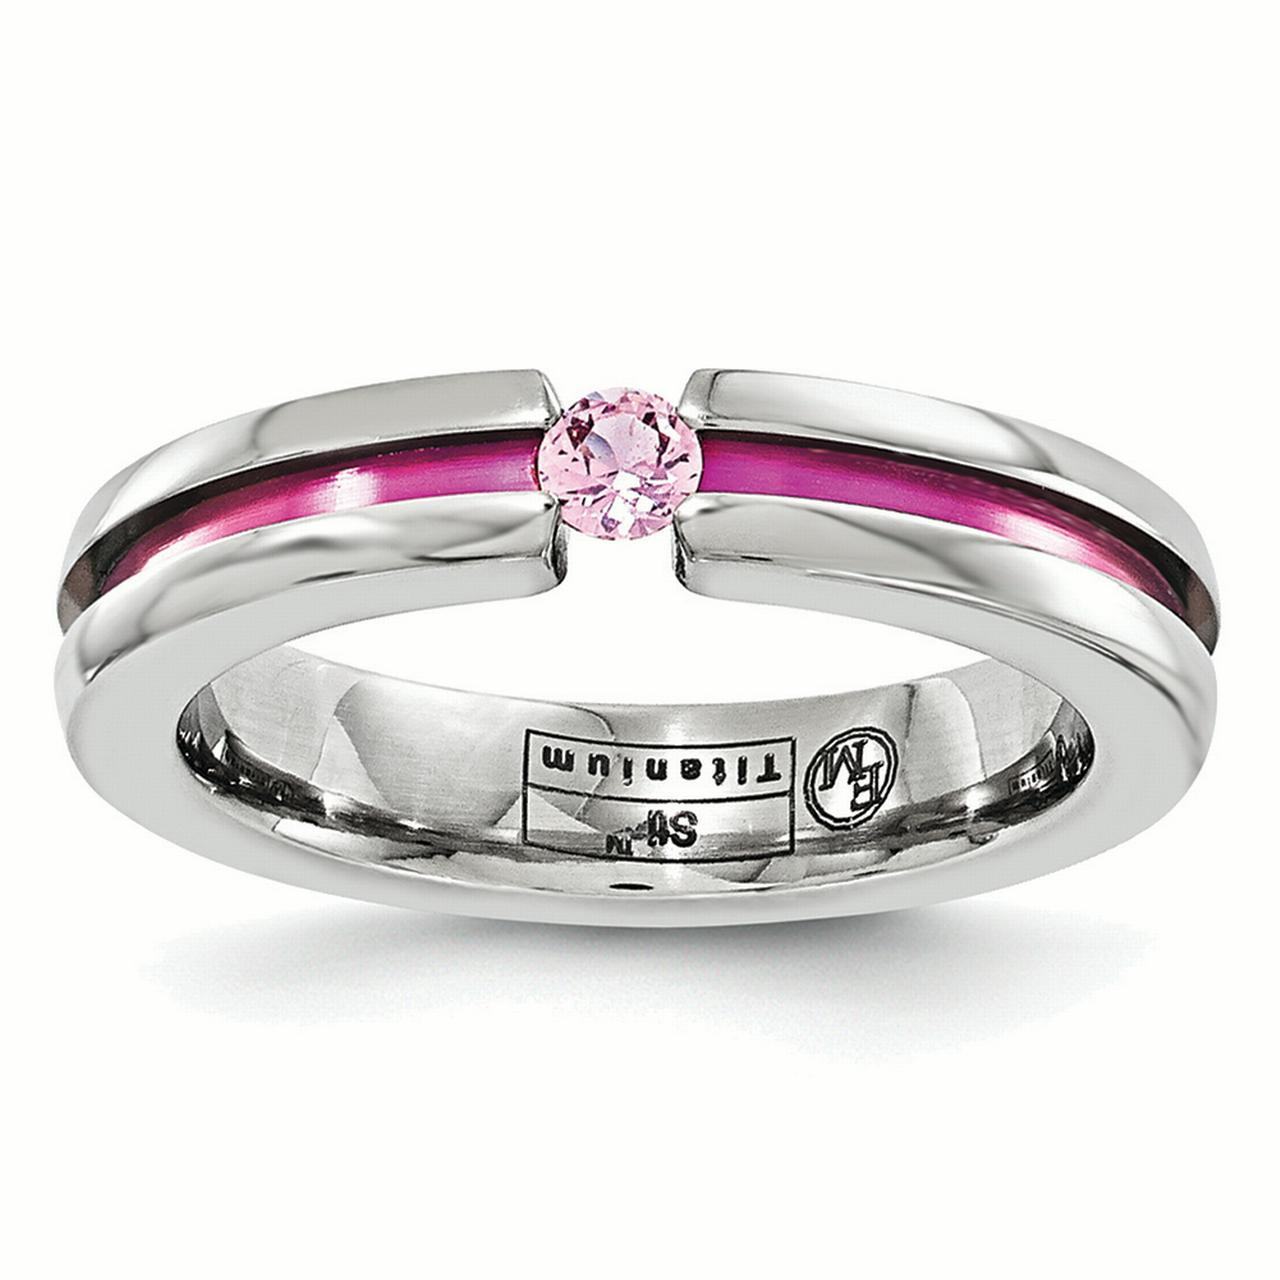 Edward Mirell Titanium Pink Sapphire & Anodized Grooved 4mm Band Ring EMR156 by